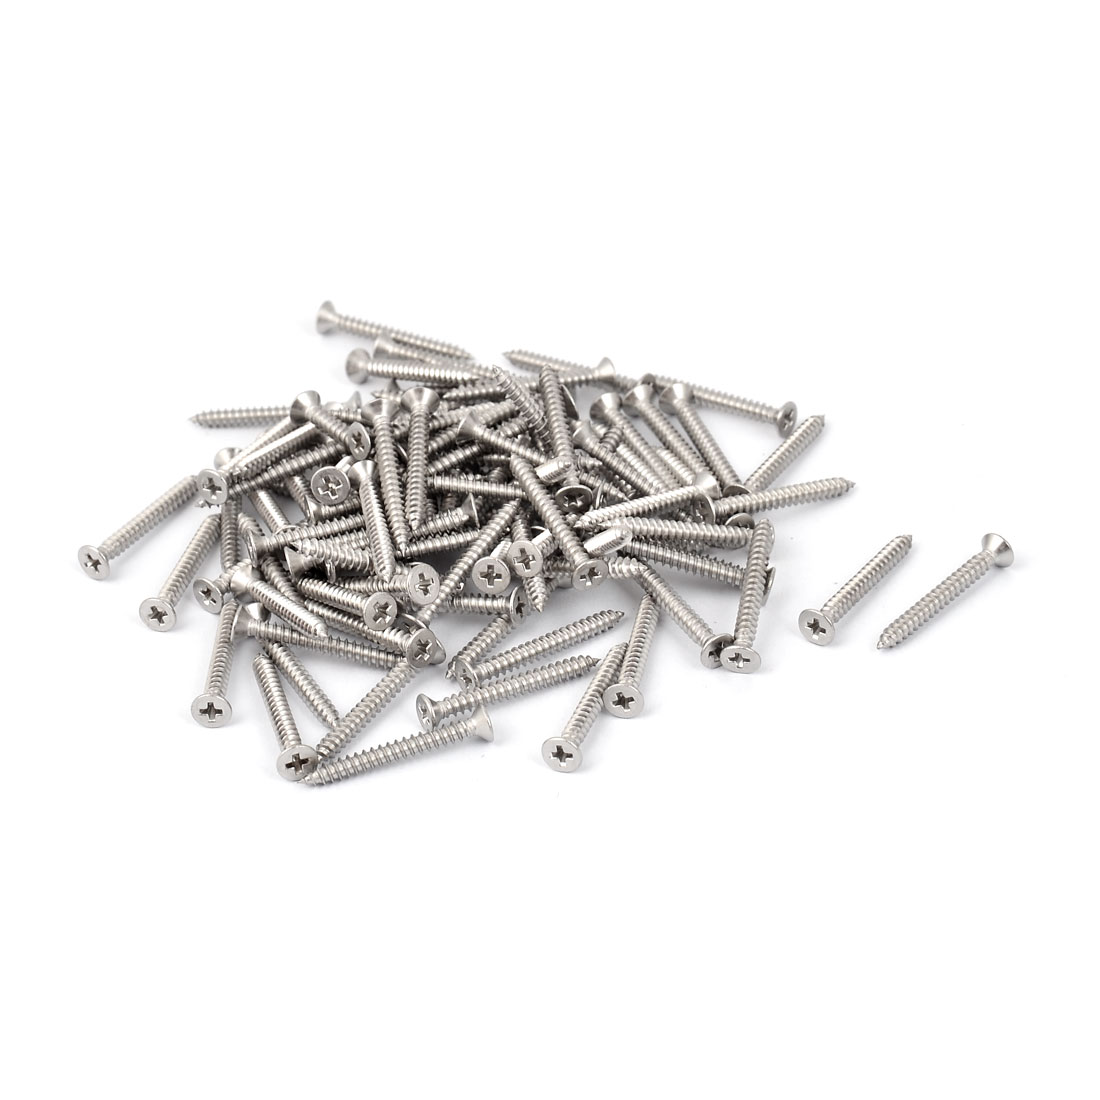 M2.9 x 25mm Cross Head Countersunk Self Tapping Screw Fasteners 100 Pcs